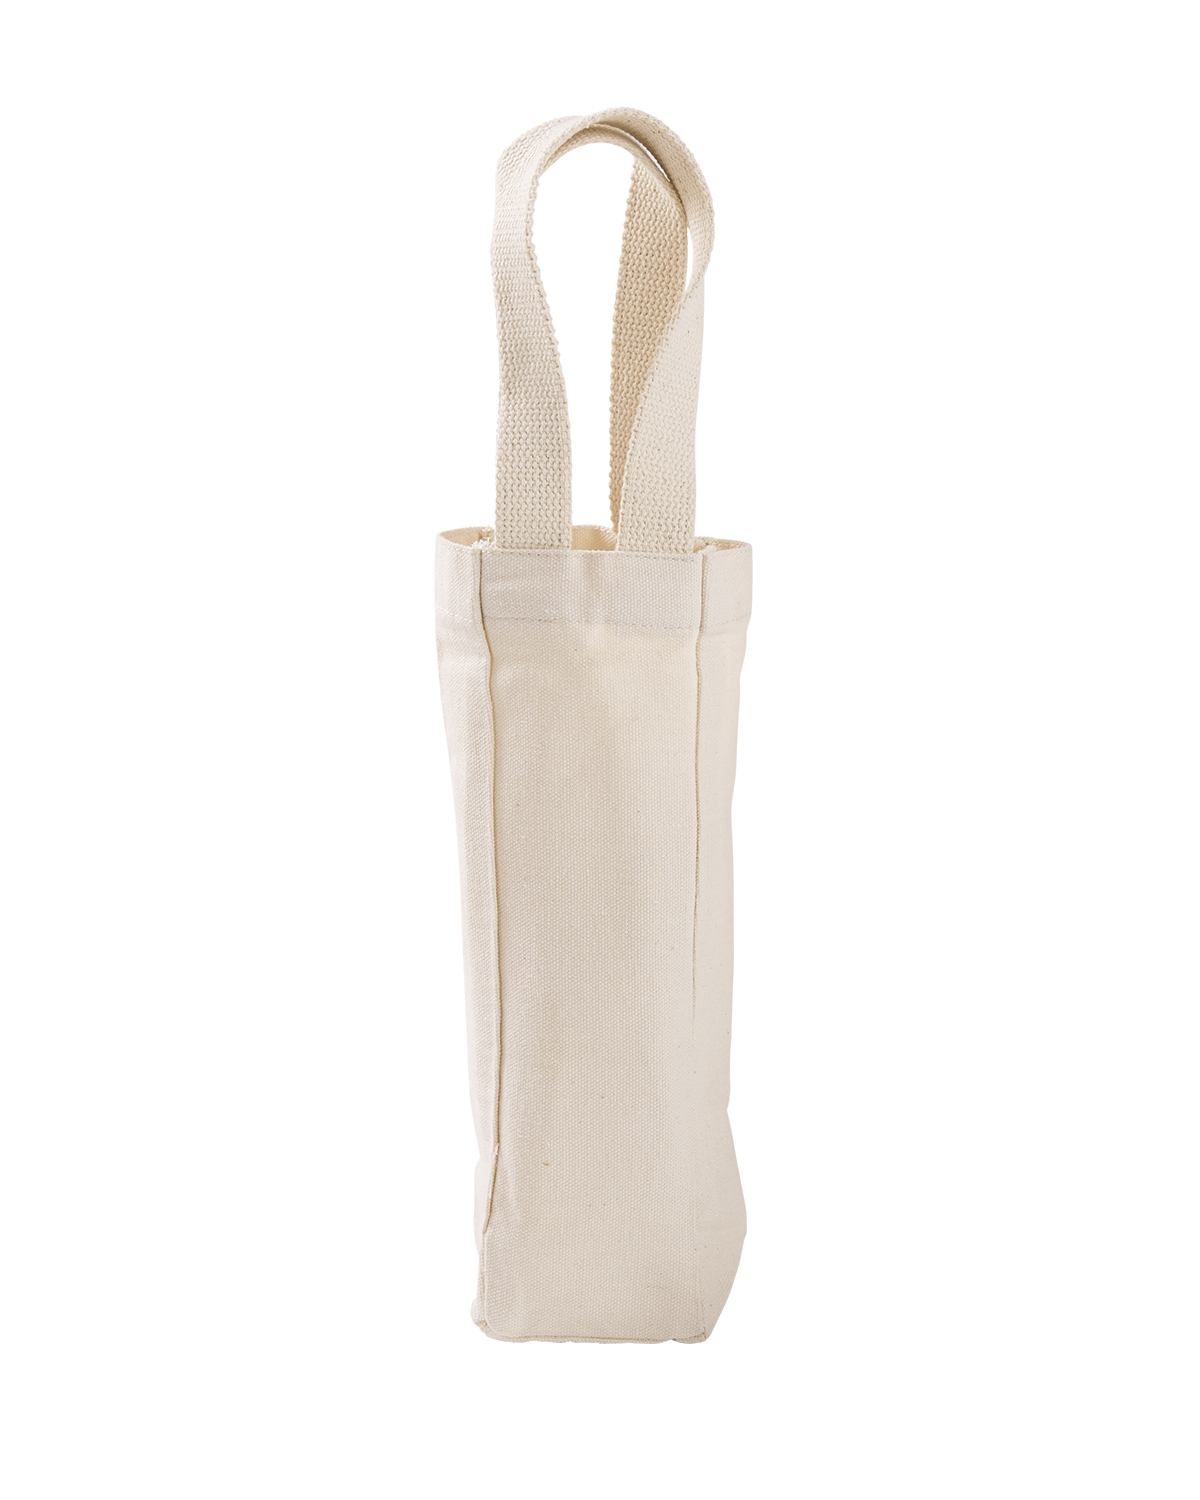 Liberty Bags Single Bottle Wine Tote - 1725